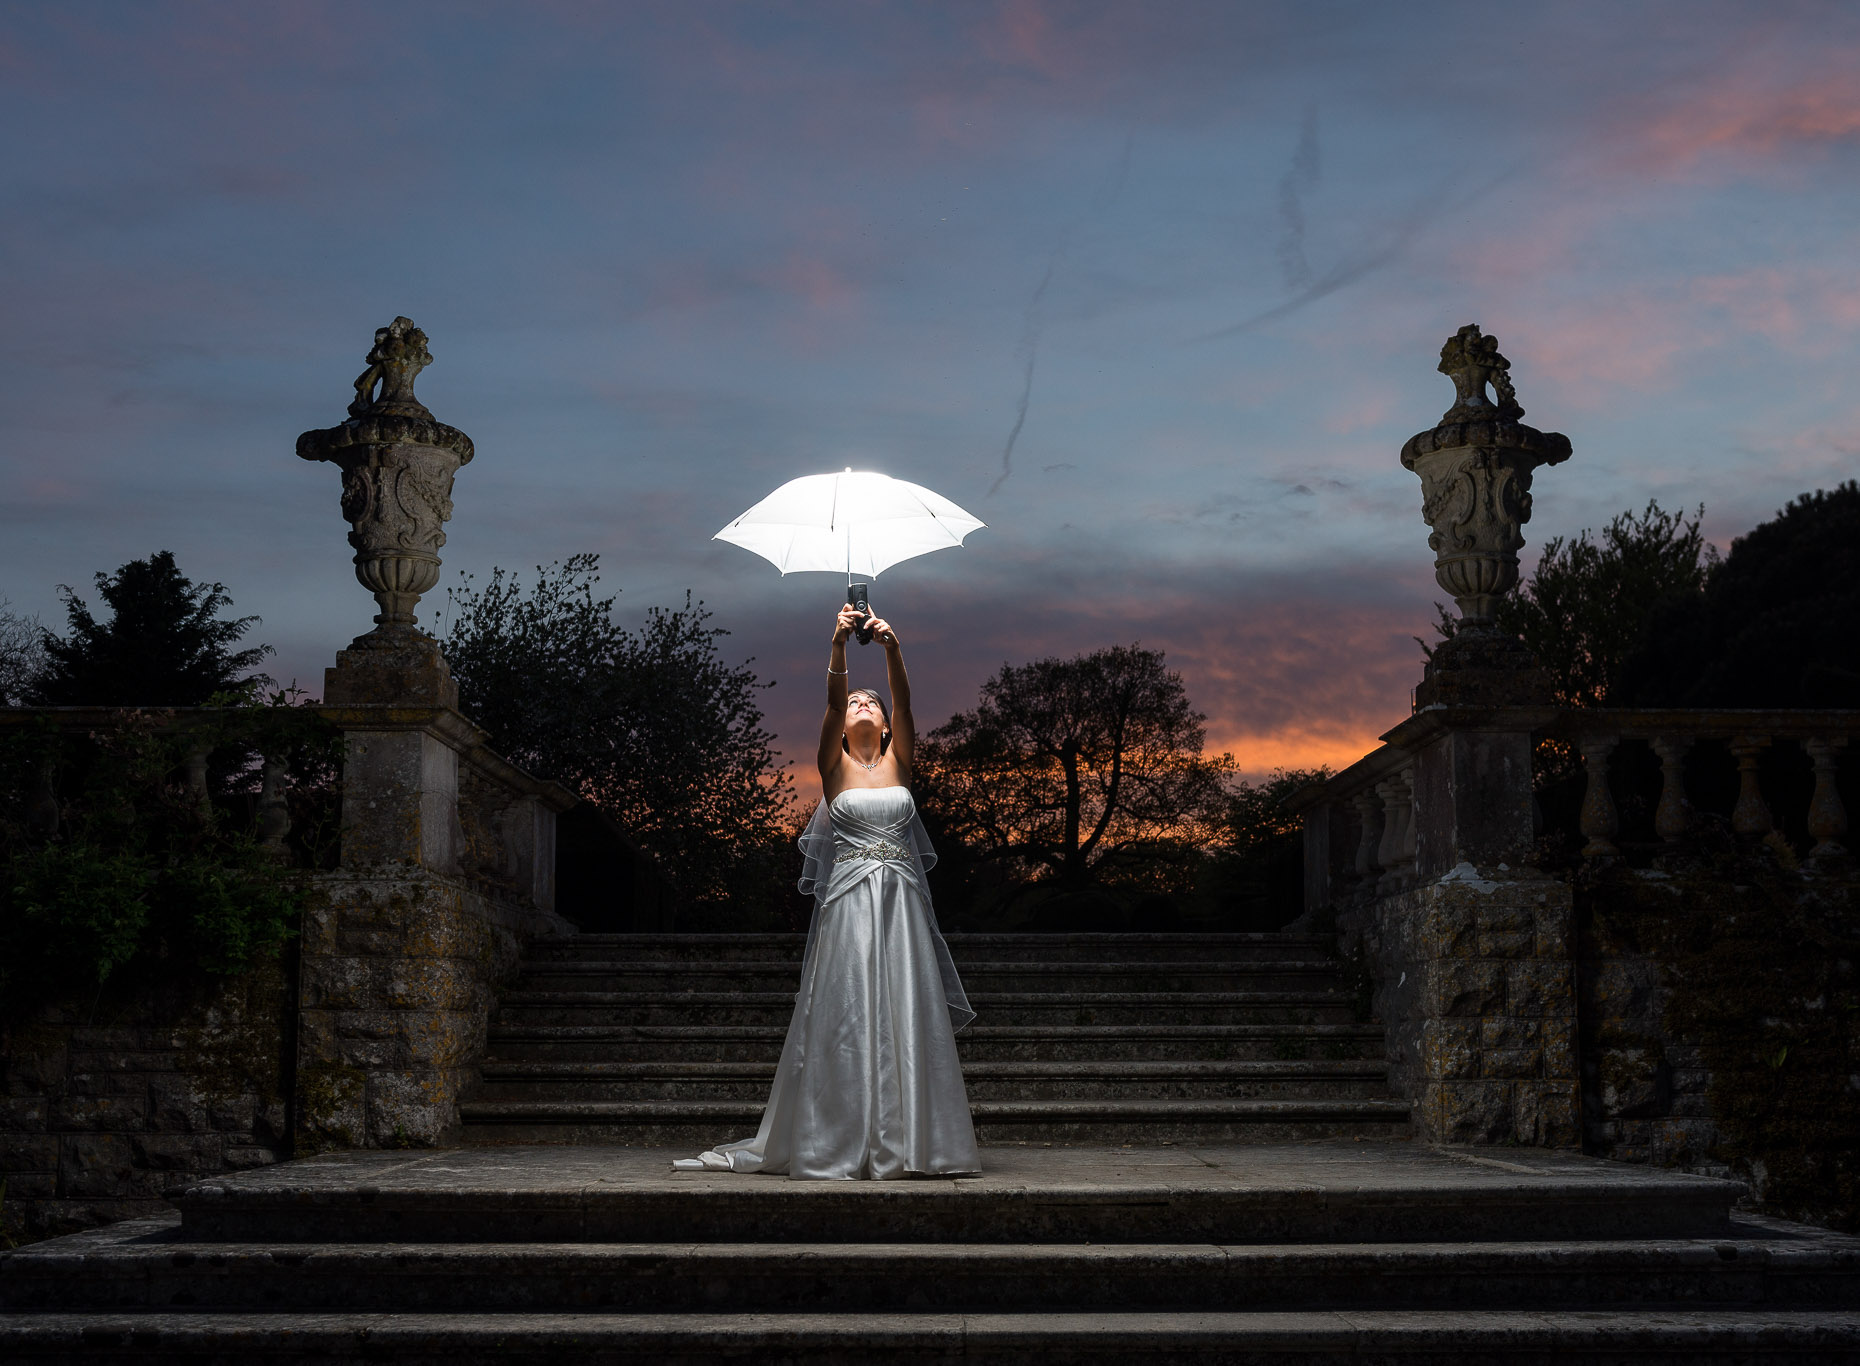 leah-umbrella-twilight-dusk-photograph-kingston-maurward-08